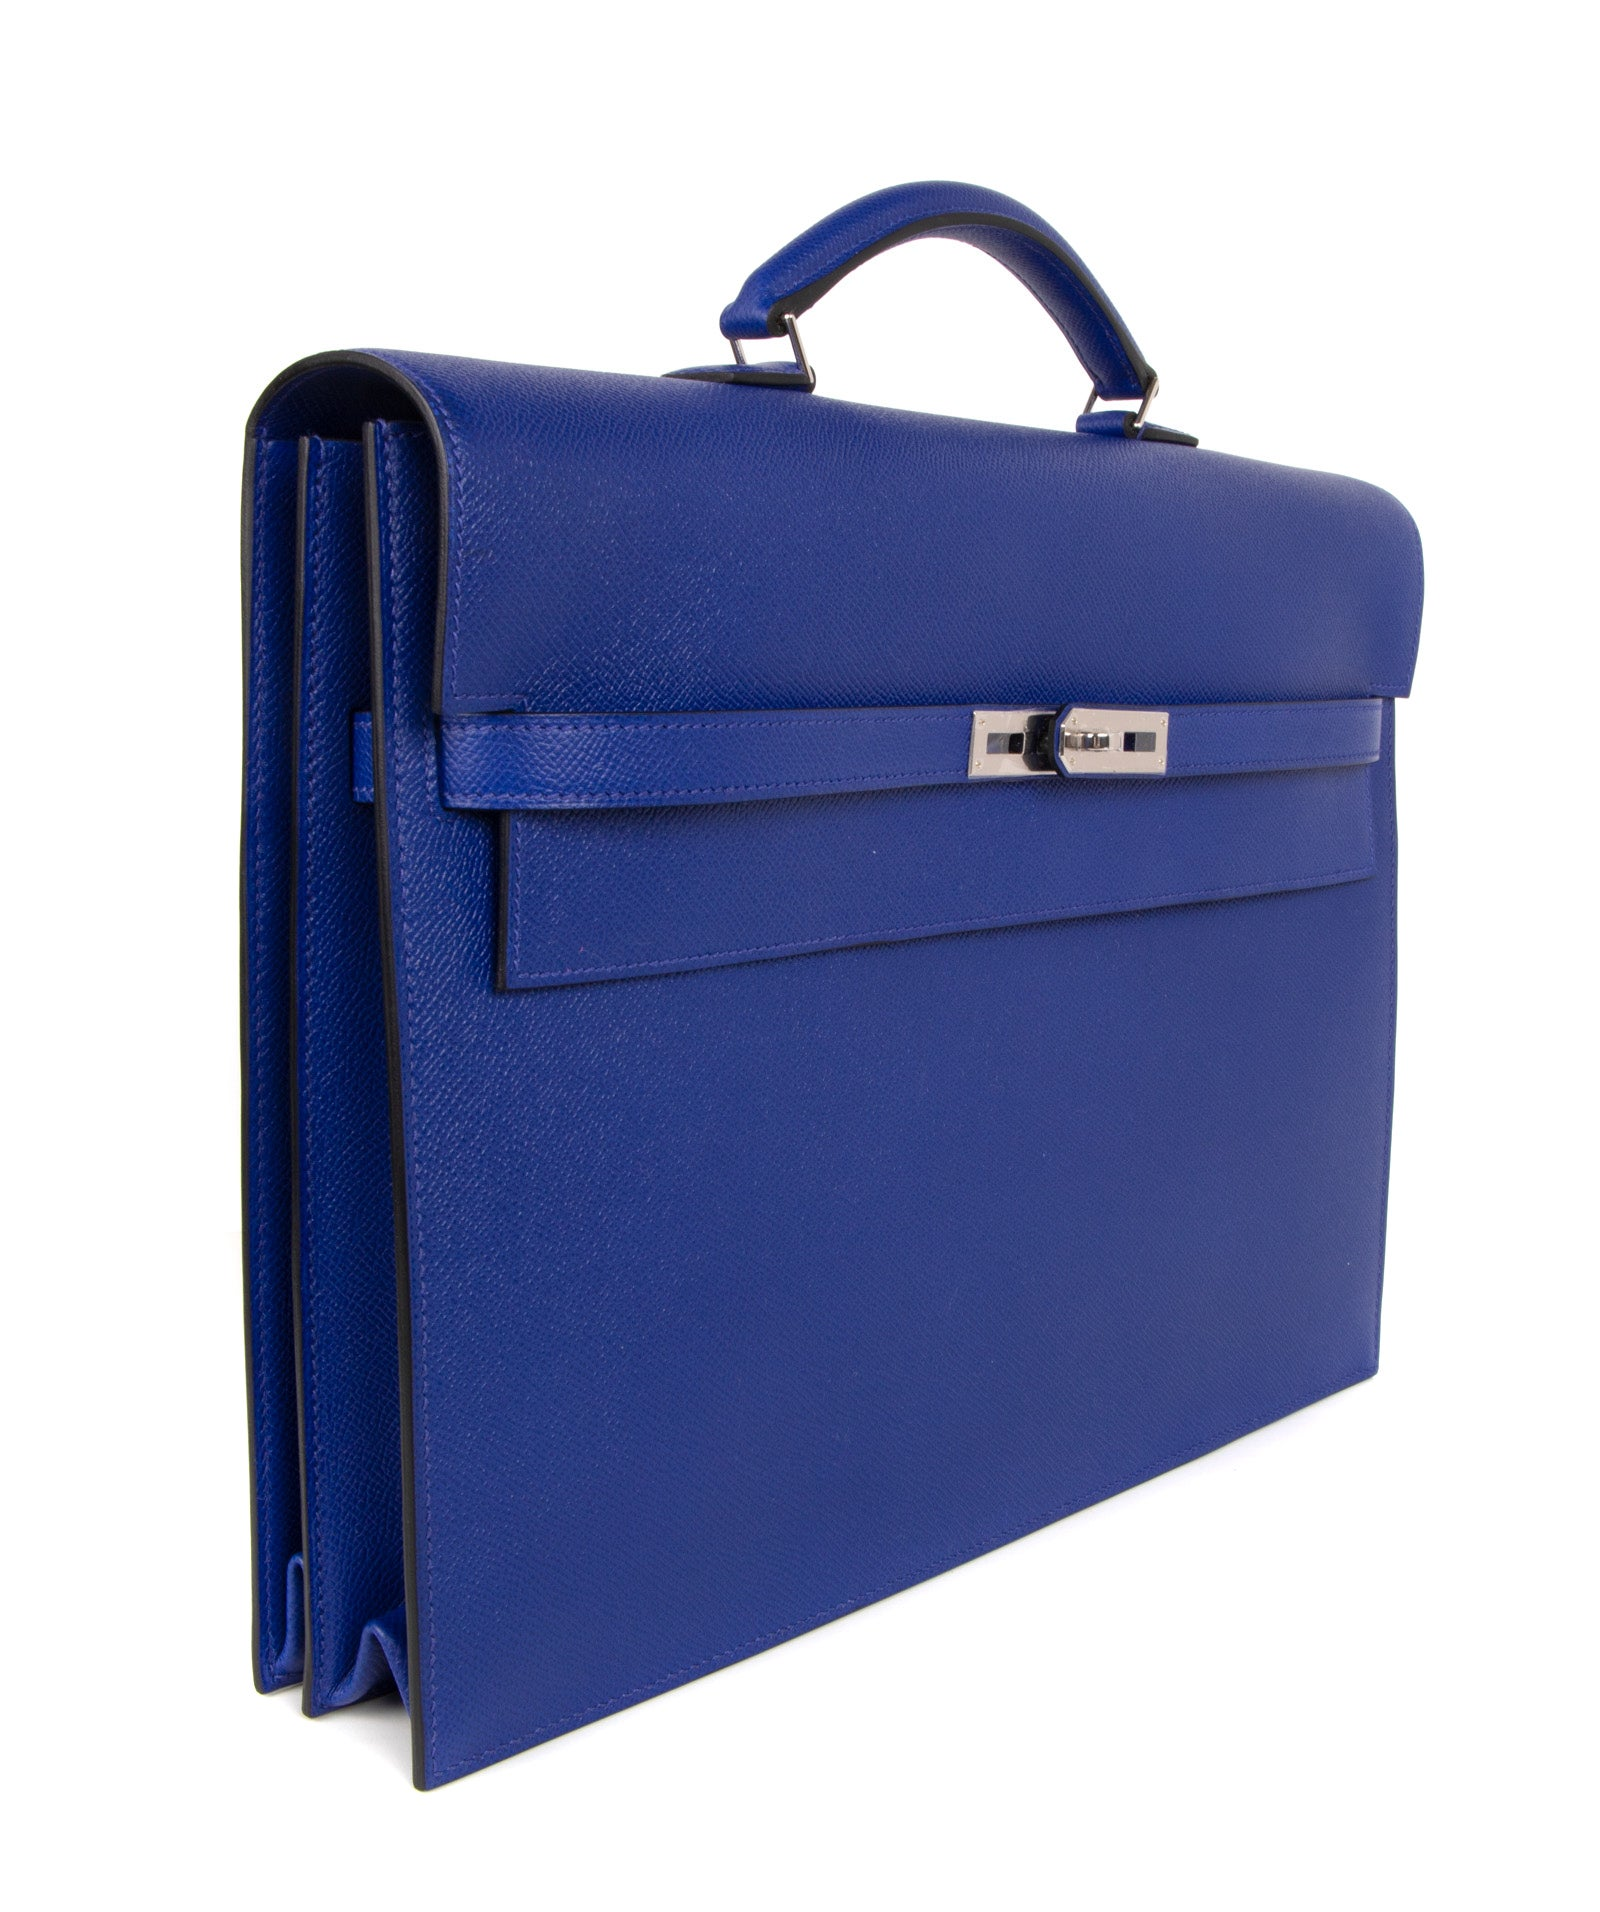 f49885f49820 Hermes Kelly Depeche 38 Briefcase Rare Electric Blue Palladium For Sale at  1stdibs